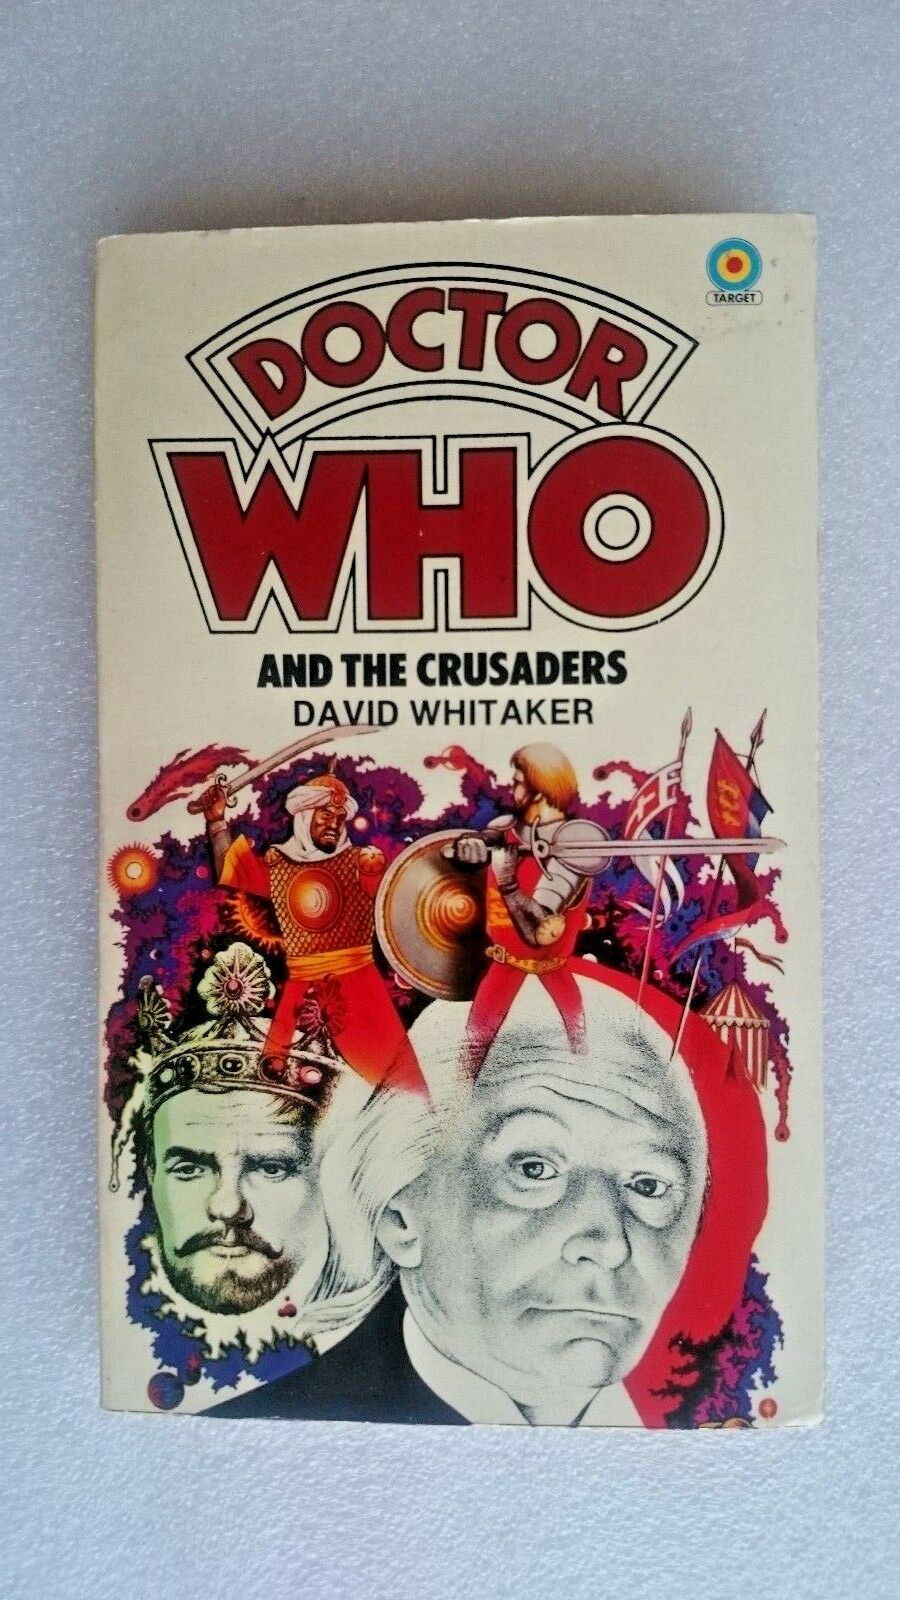 Doctor Who and the Crusaders by David Whitaker (Paperback, 1979)